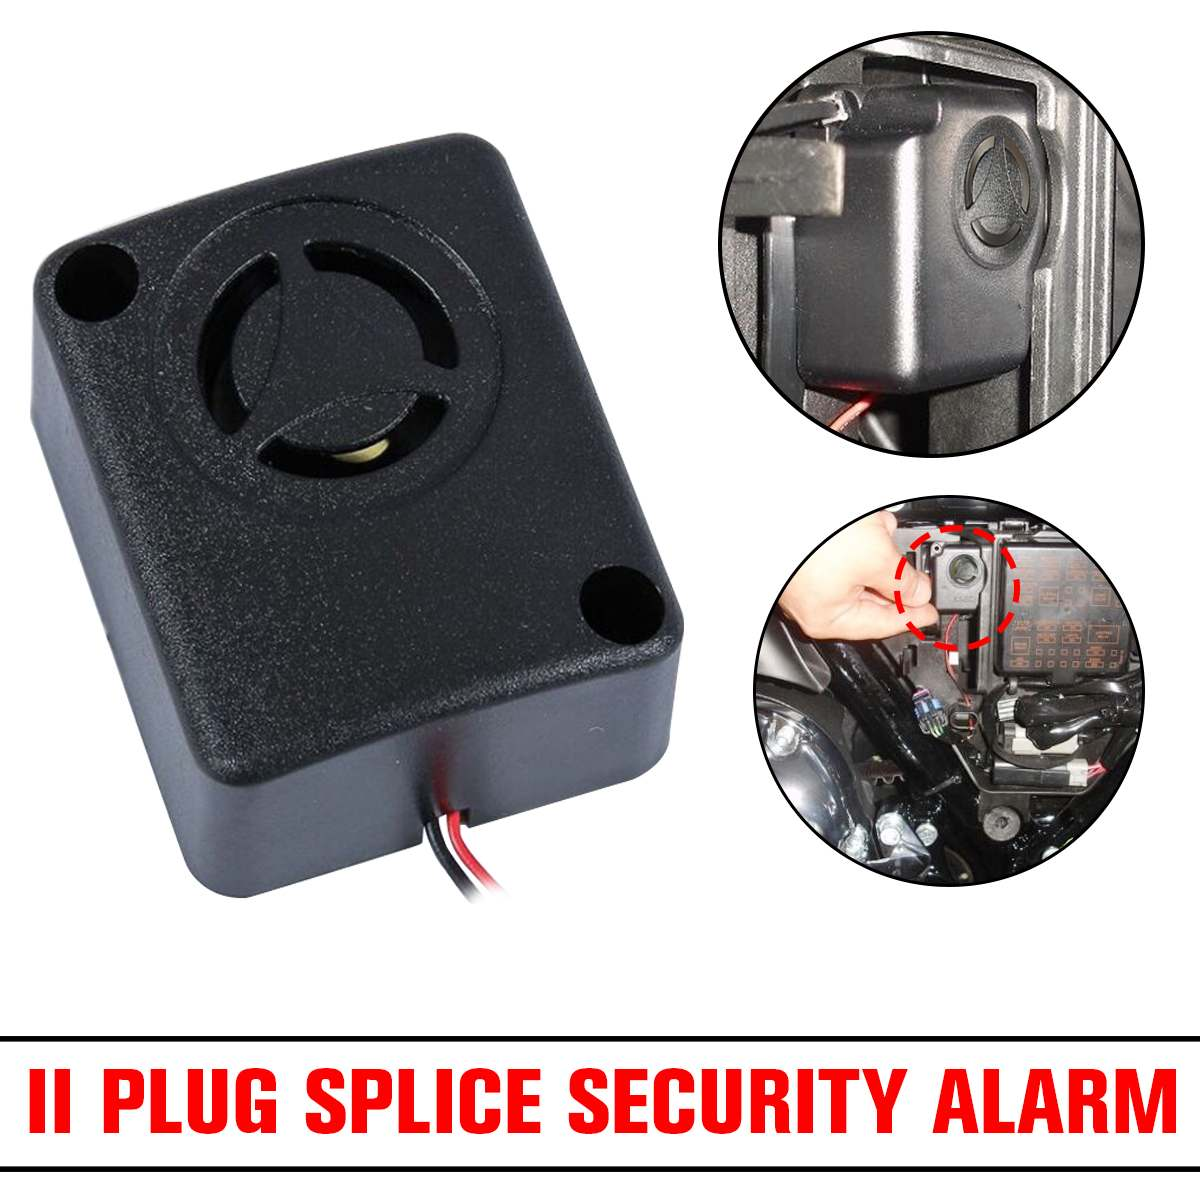 NEW 1pcs Mini 120dB Alarm Motorcycle Alarm Piezo Wired Rohs 12V Black Continuous Sound Alarm